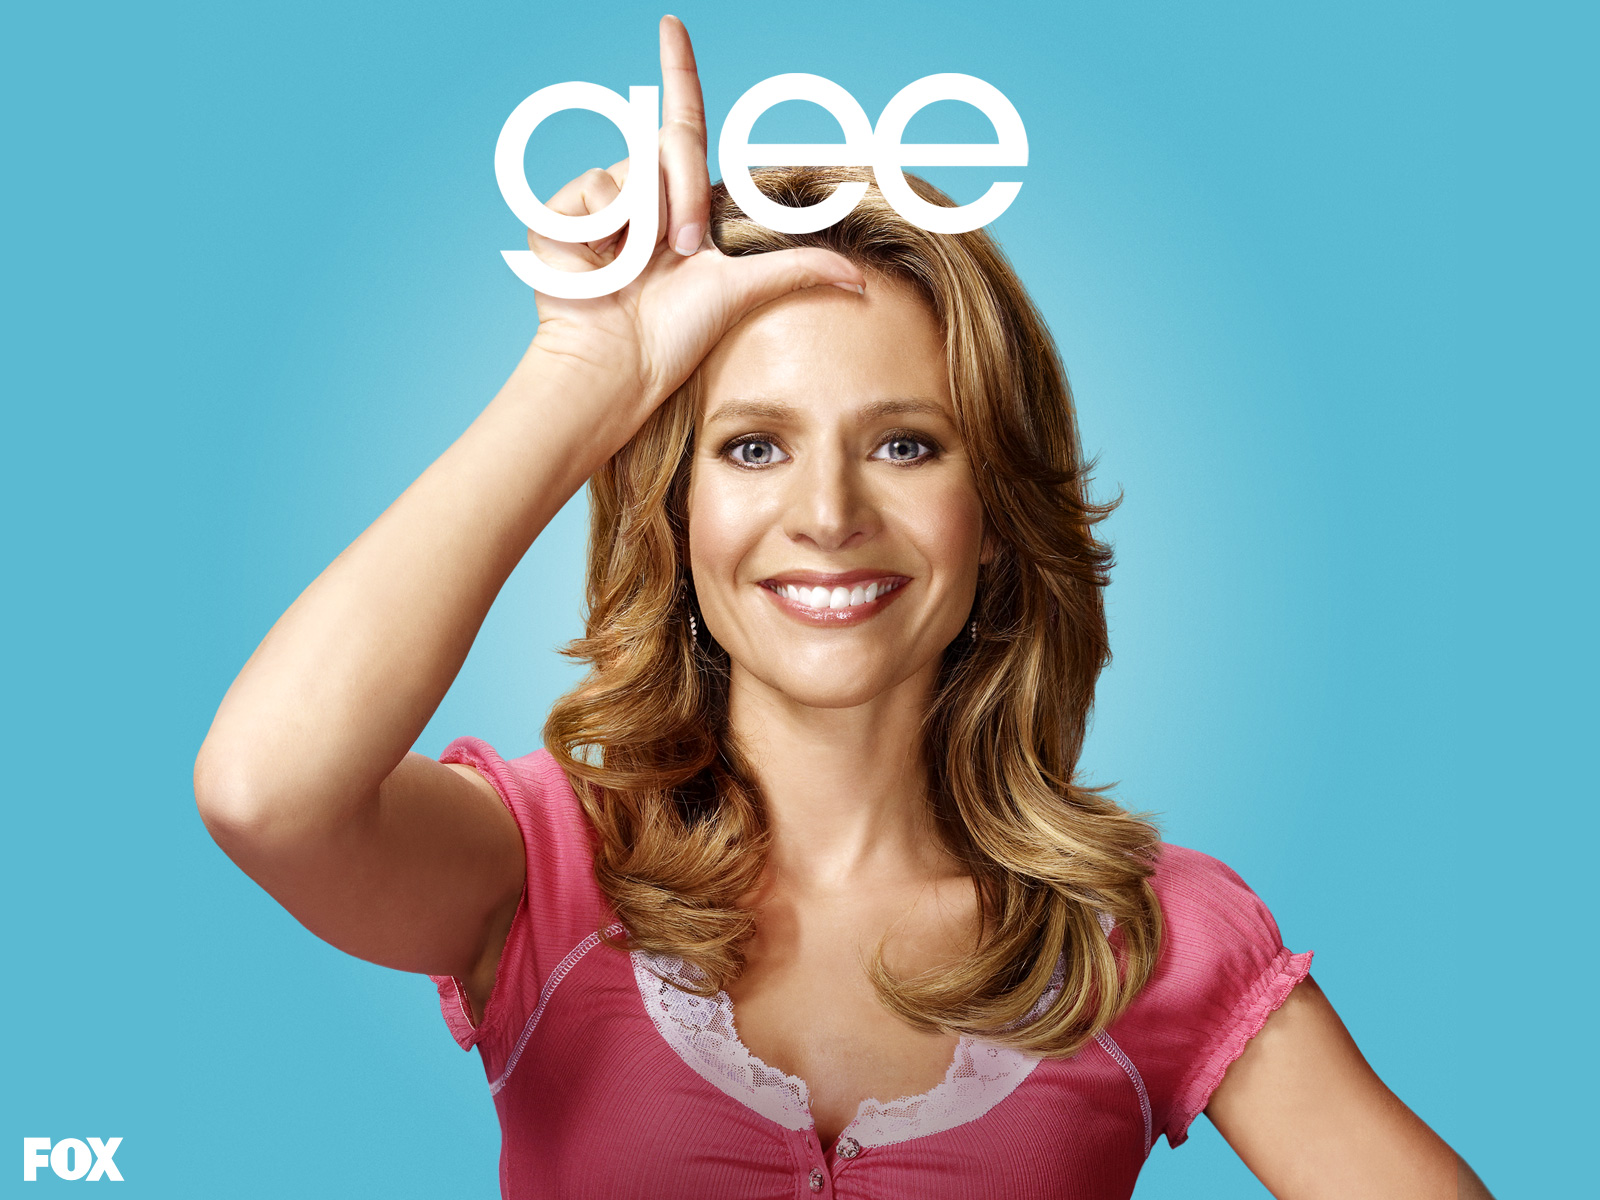 Glee hd wallpapers for desktop download glee wallpapers voltagebd Image collections